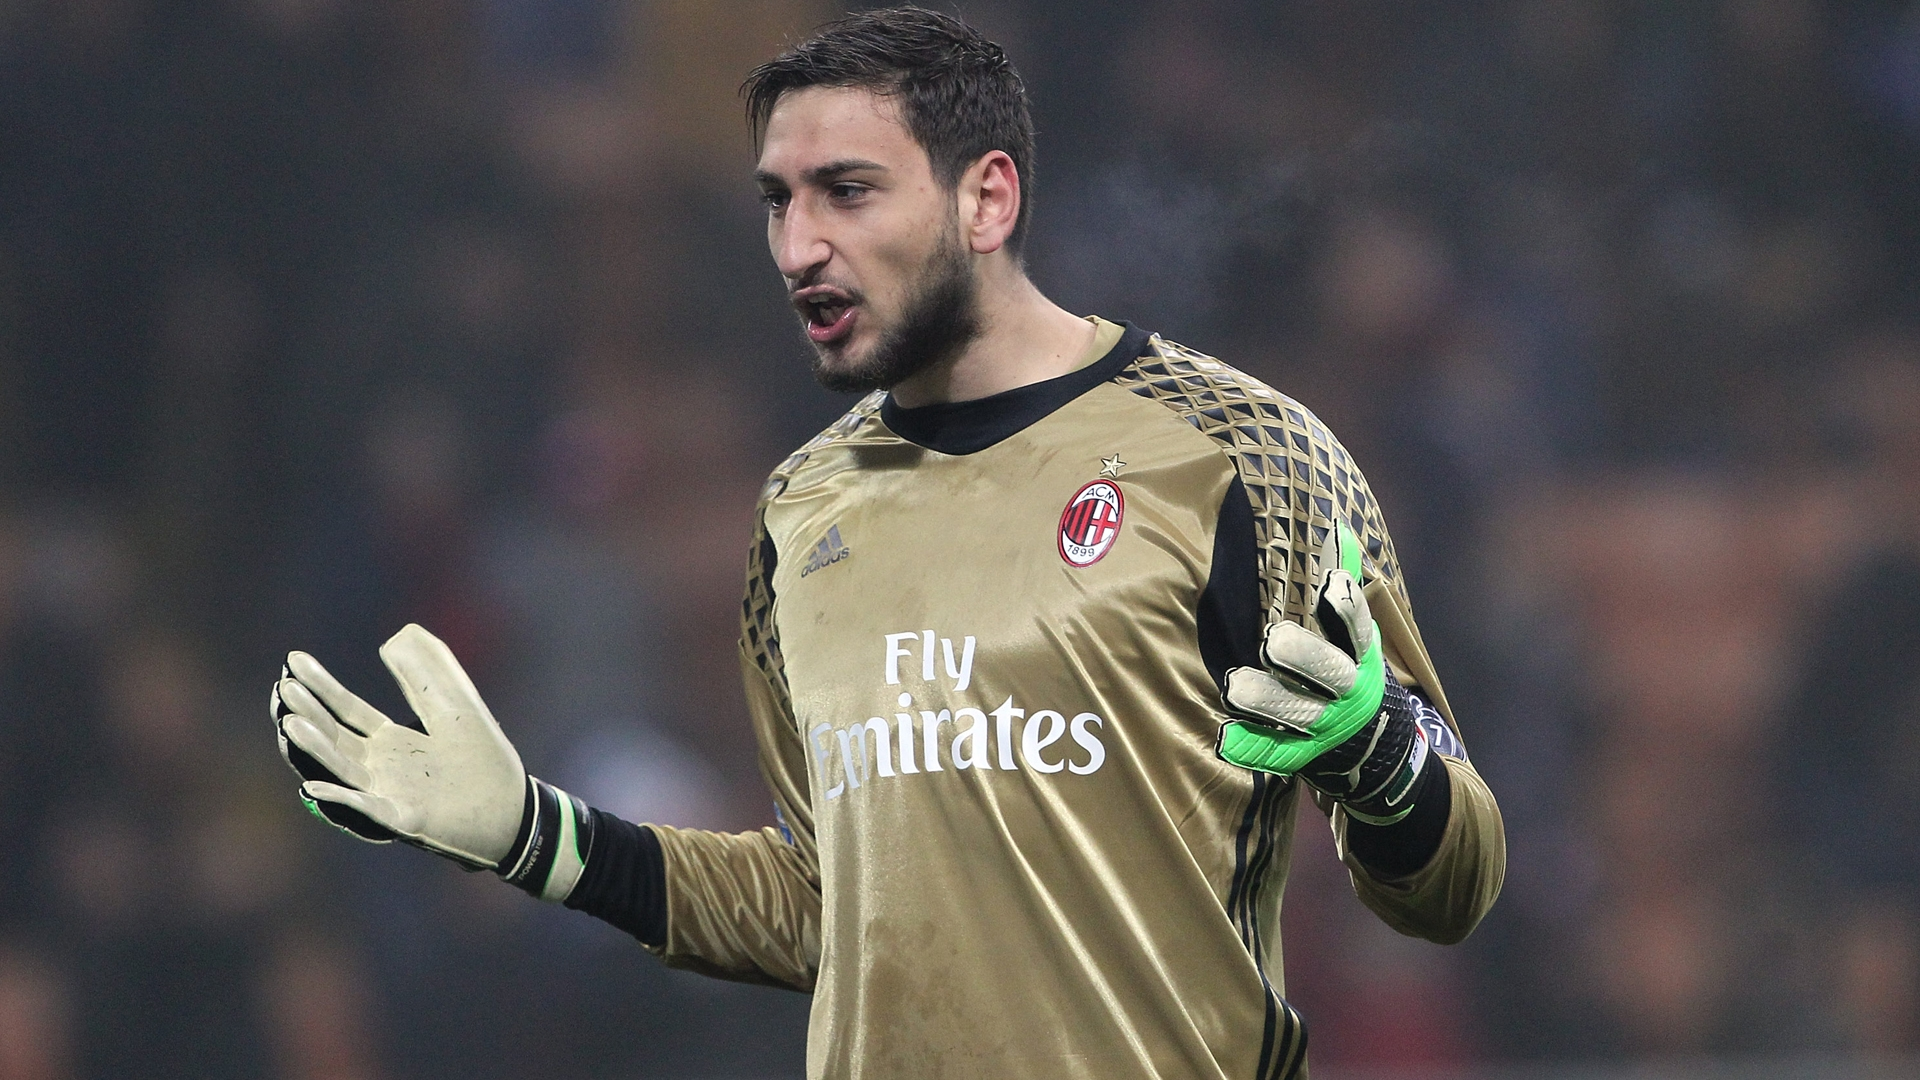 Italy's great hope and Buffon's heir apparent, Gianluigi Donnarumma had initially turned down Milan's contractual offer and many would have predicted a transfer to one of Europe's top clubs was on the cards.